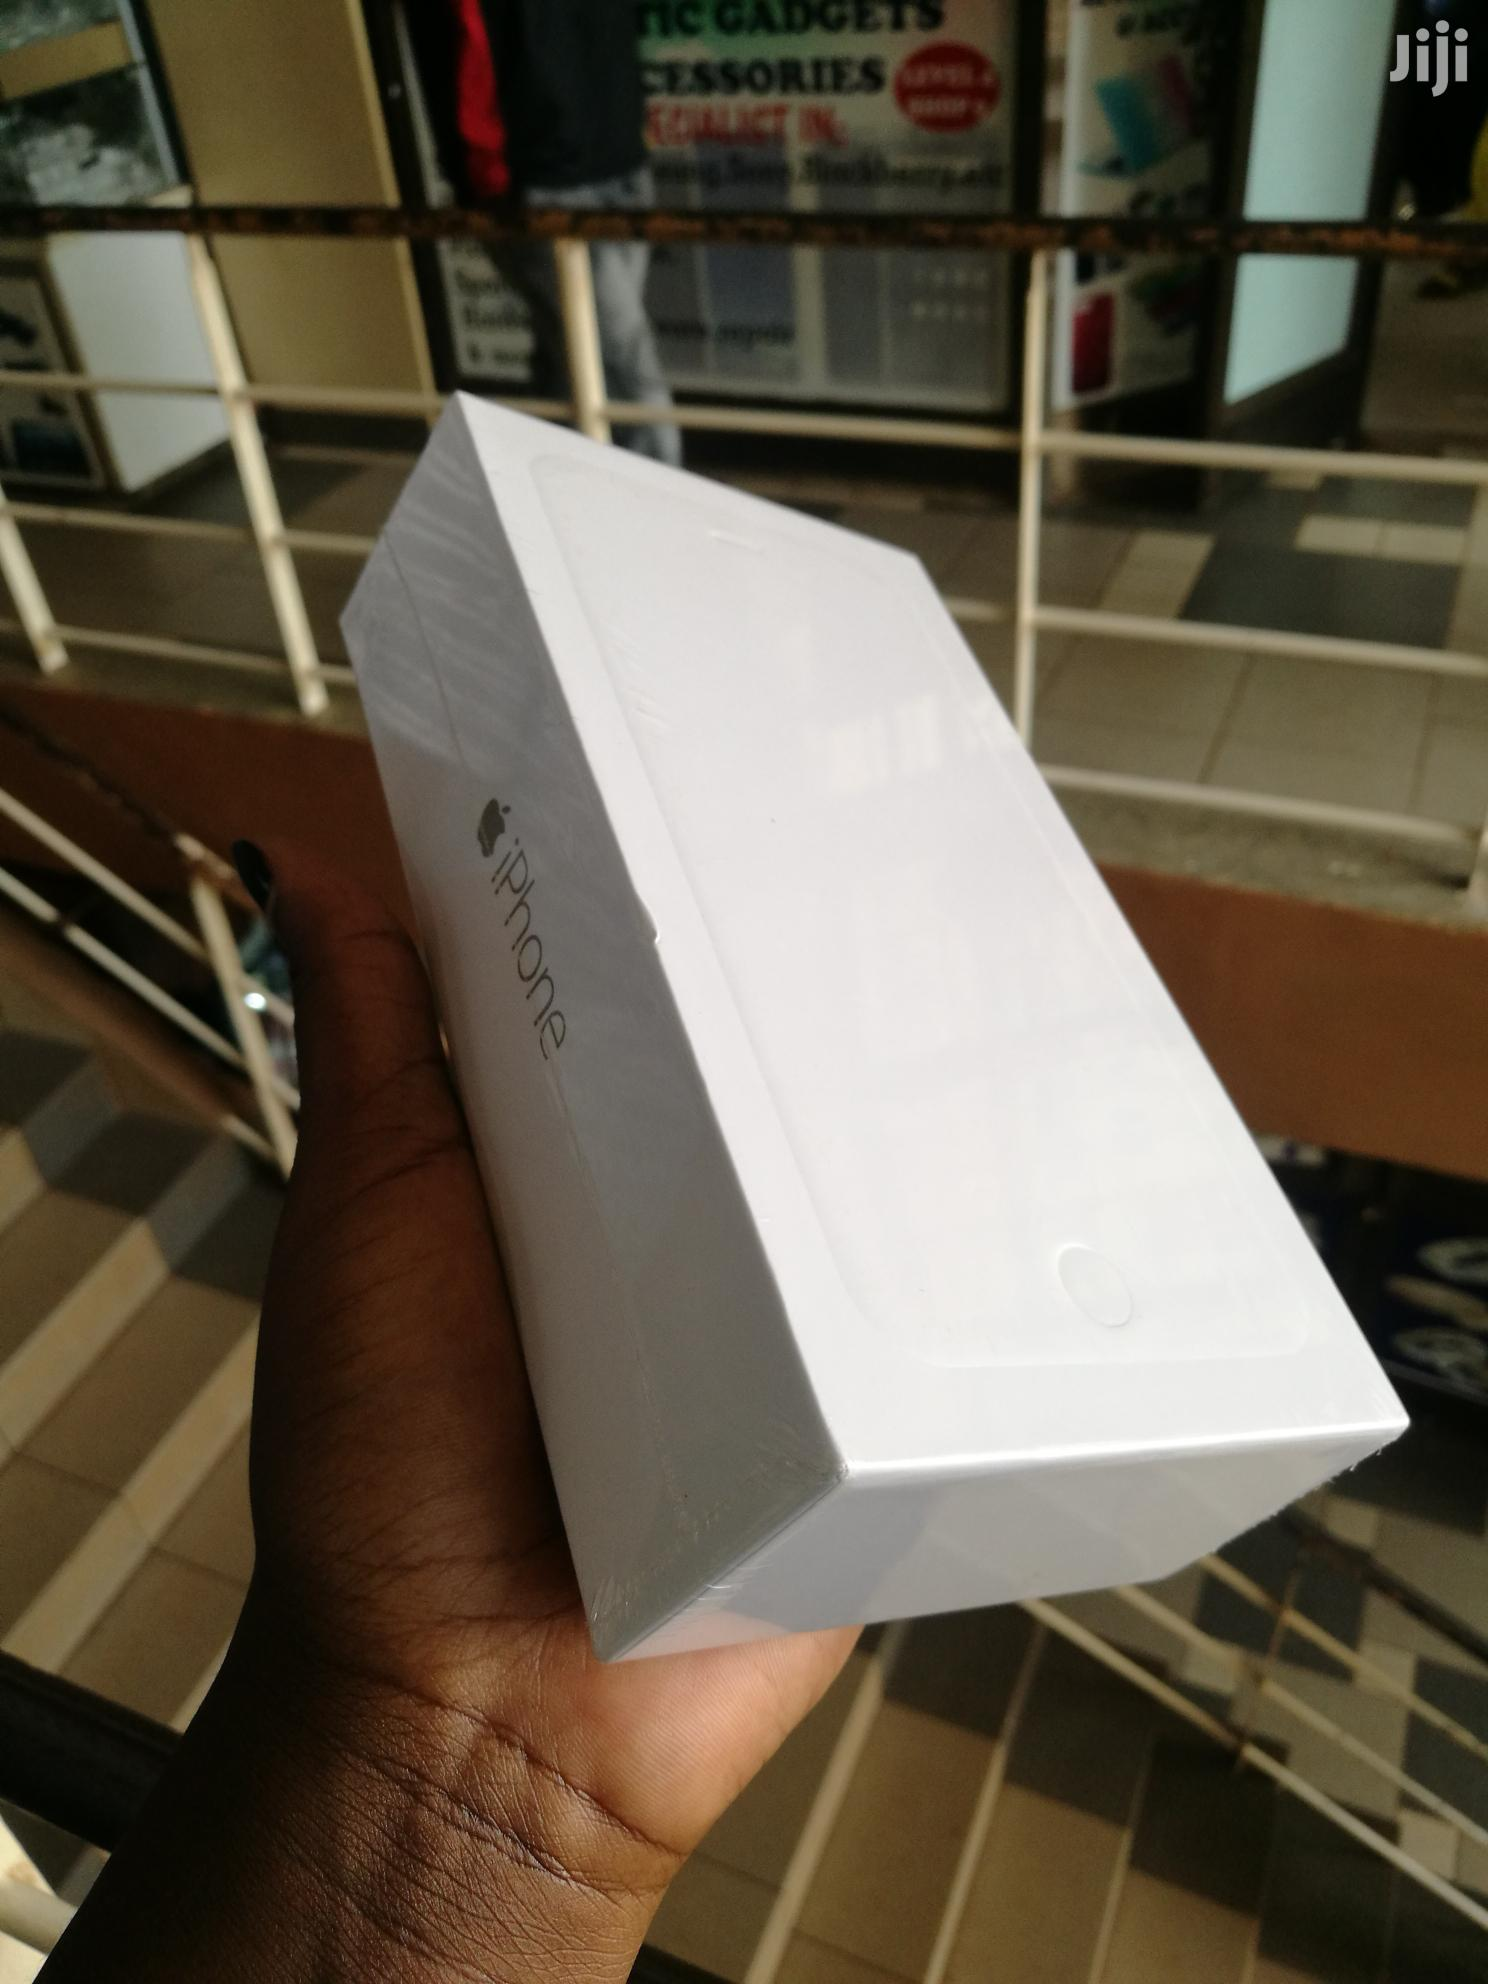 New Apple iPhone 6 Plus 64 GB Gray | Mobile Phones for sale in Kampala, Central Region, Uganda